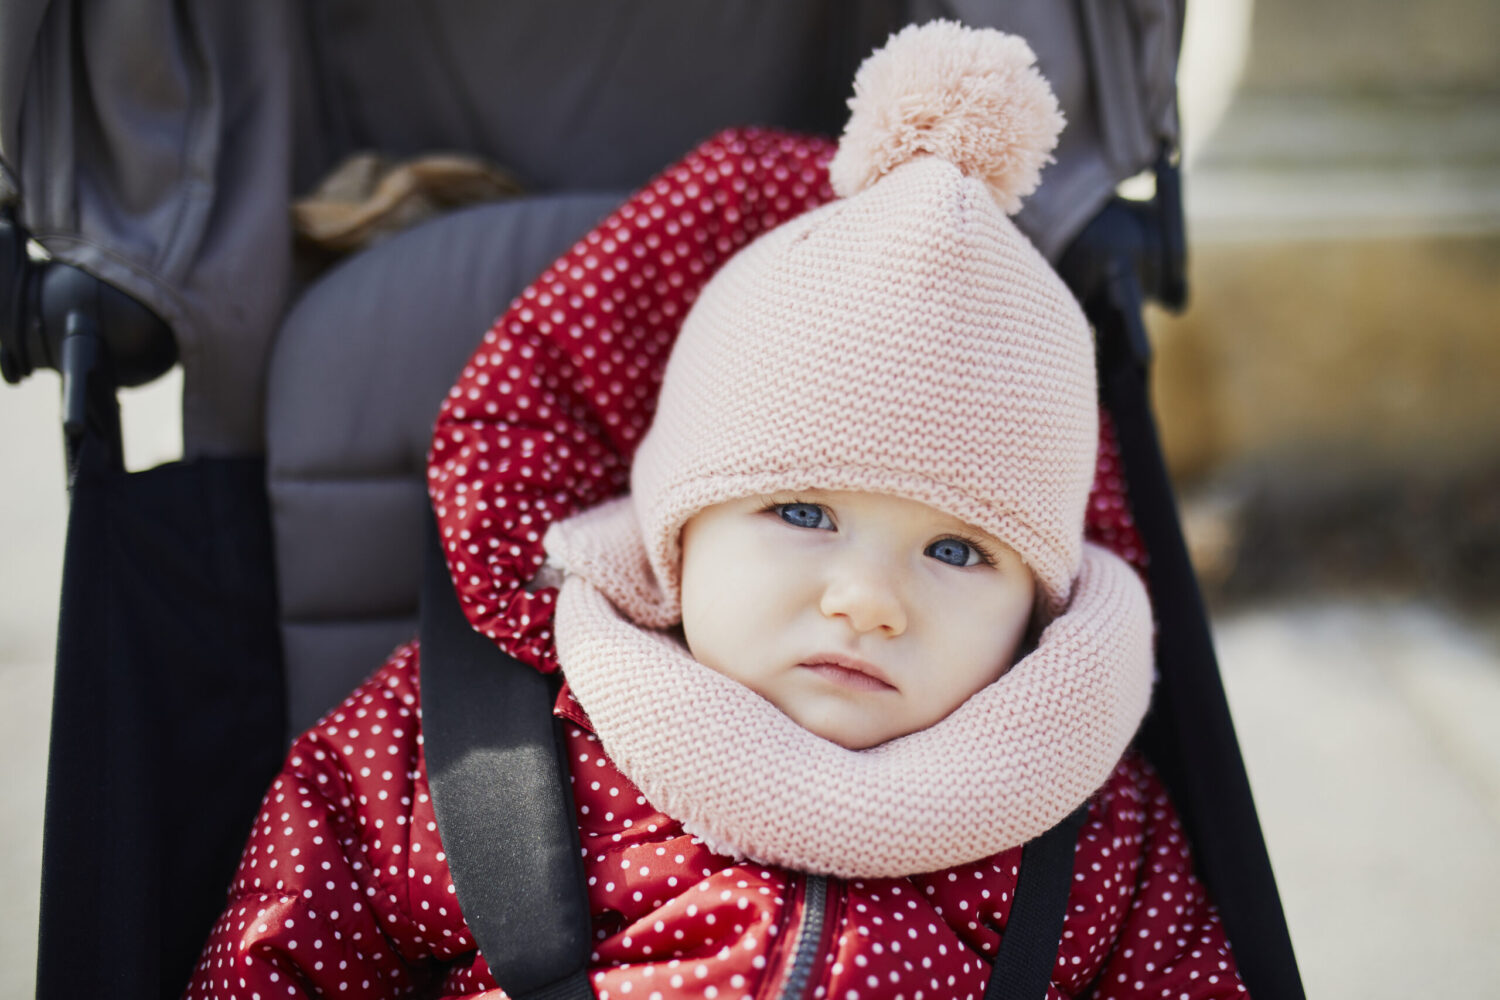 Adorable little girl in red jacket and pink knitted hat sitting in pushchair outdoors on a fall day. Autumn walks with kids